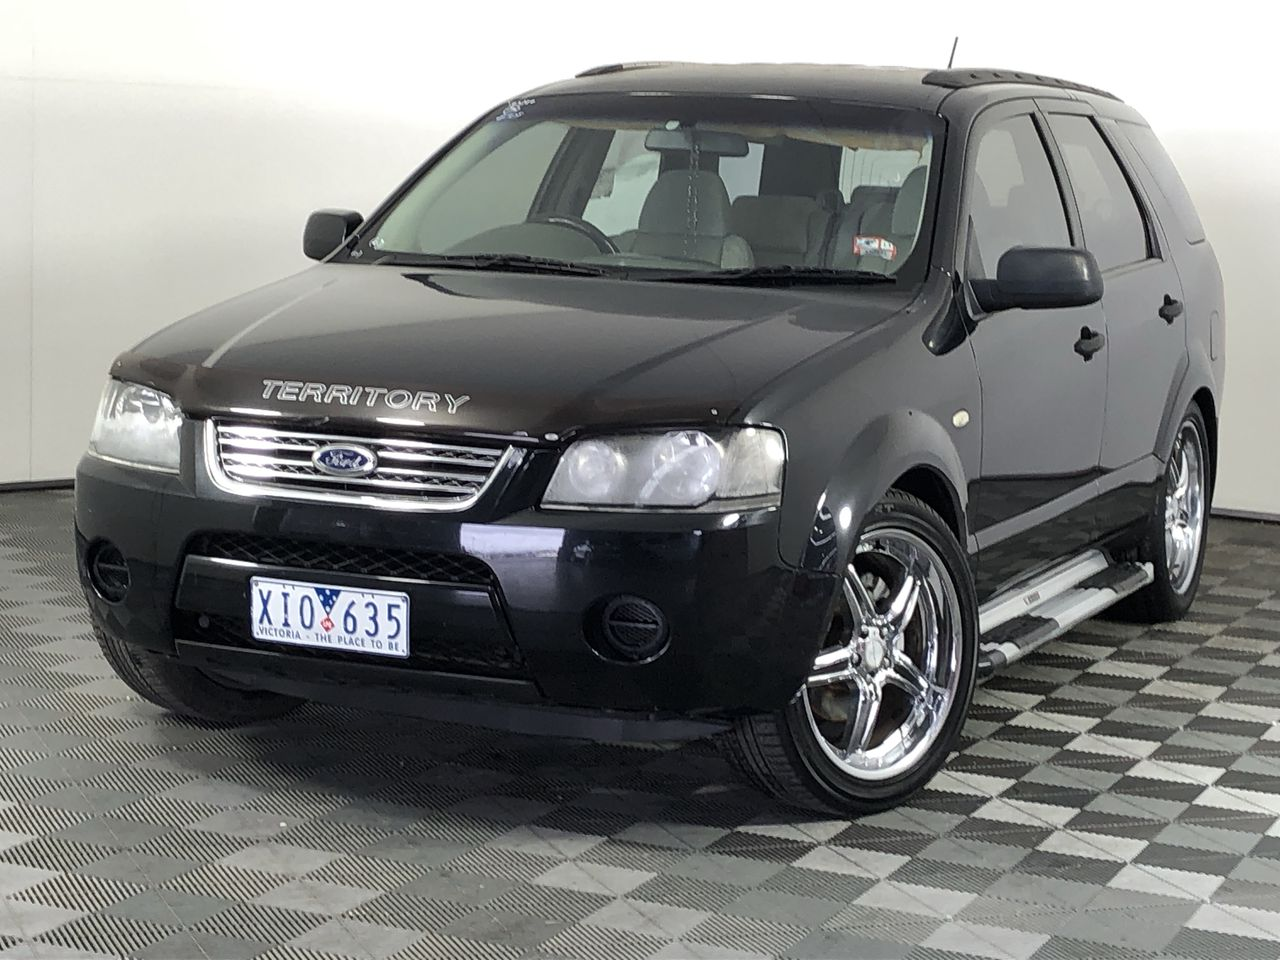 2004 Ford Territory TX (RWD) SX Automatic 7 Seats Wagon